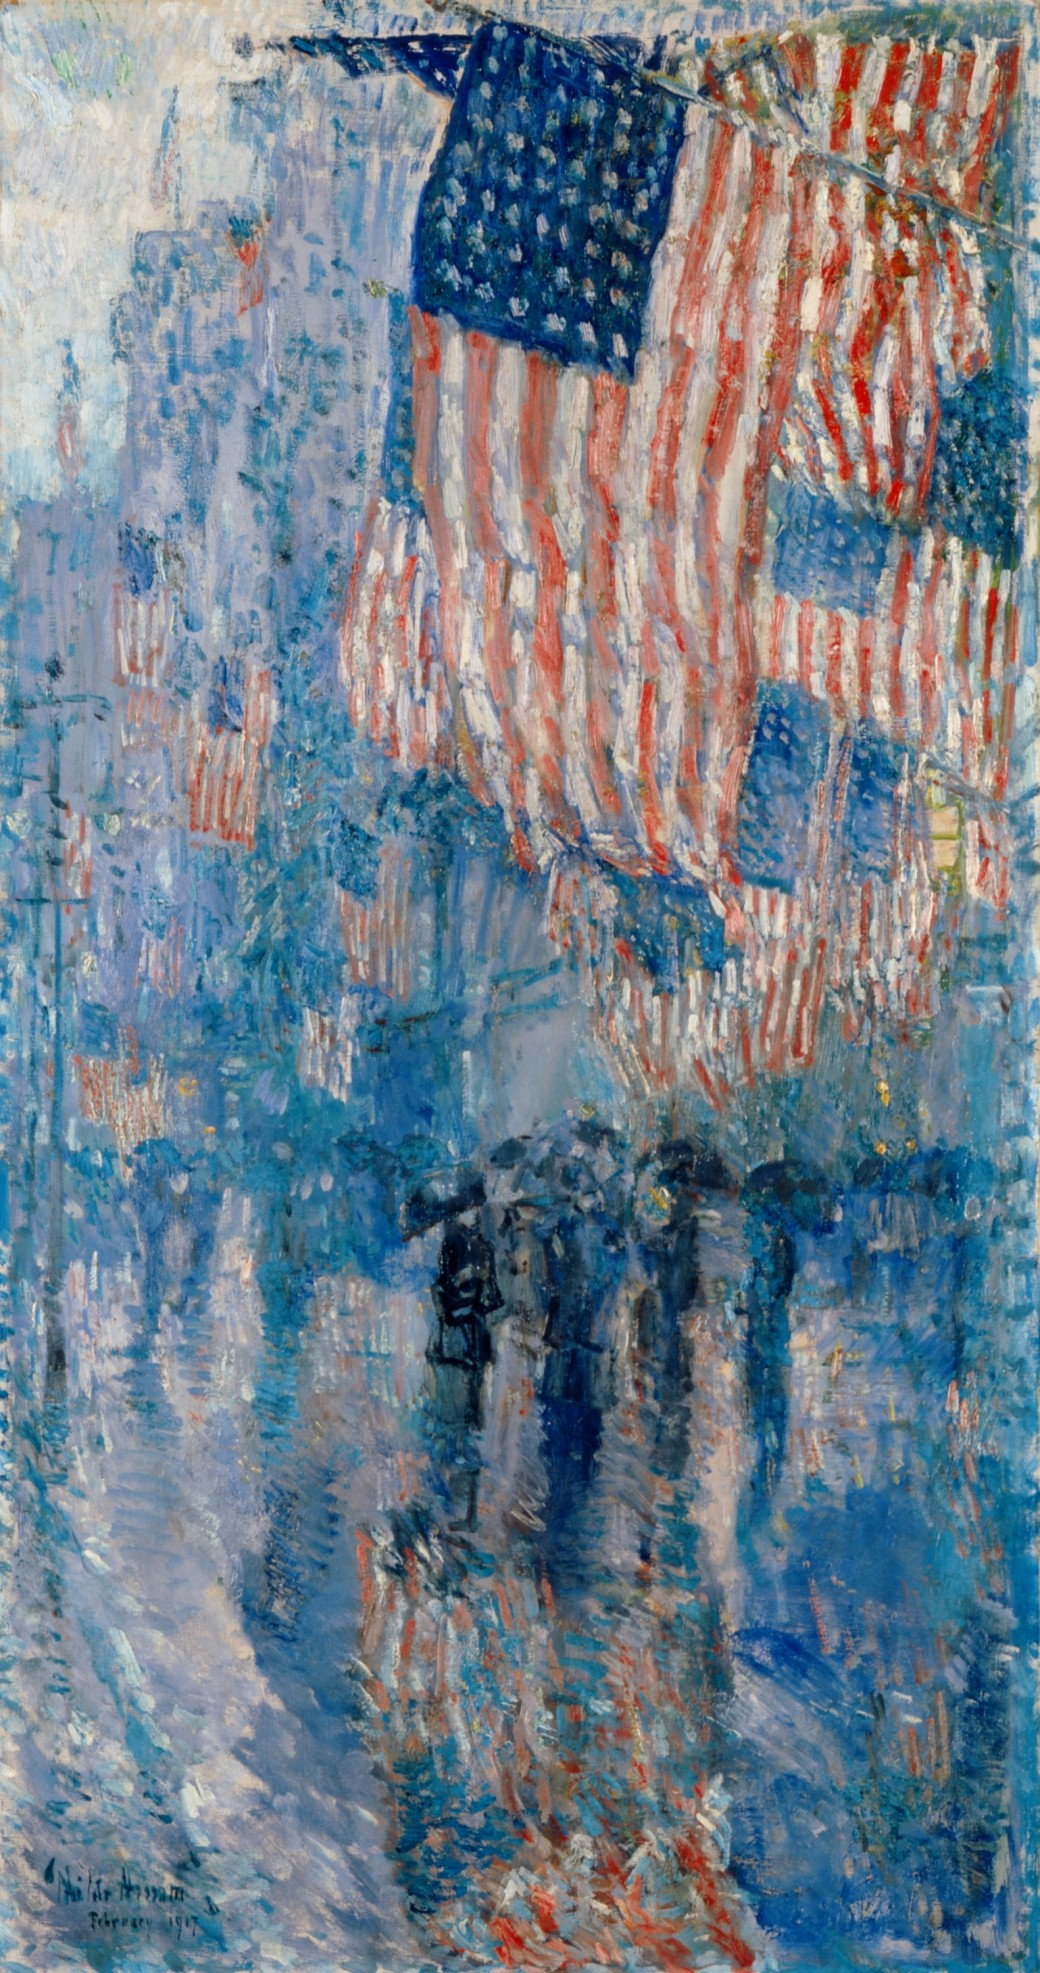 Boston-born artist, Childe Hassam,  Fifth Avenue in the Rain , hanging in the White House since 1963. Linda's daughter noticed his work while traveling in Europe.